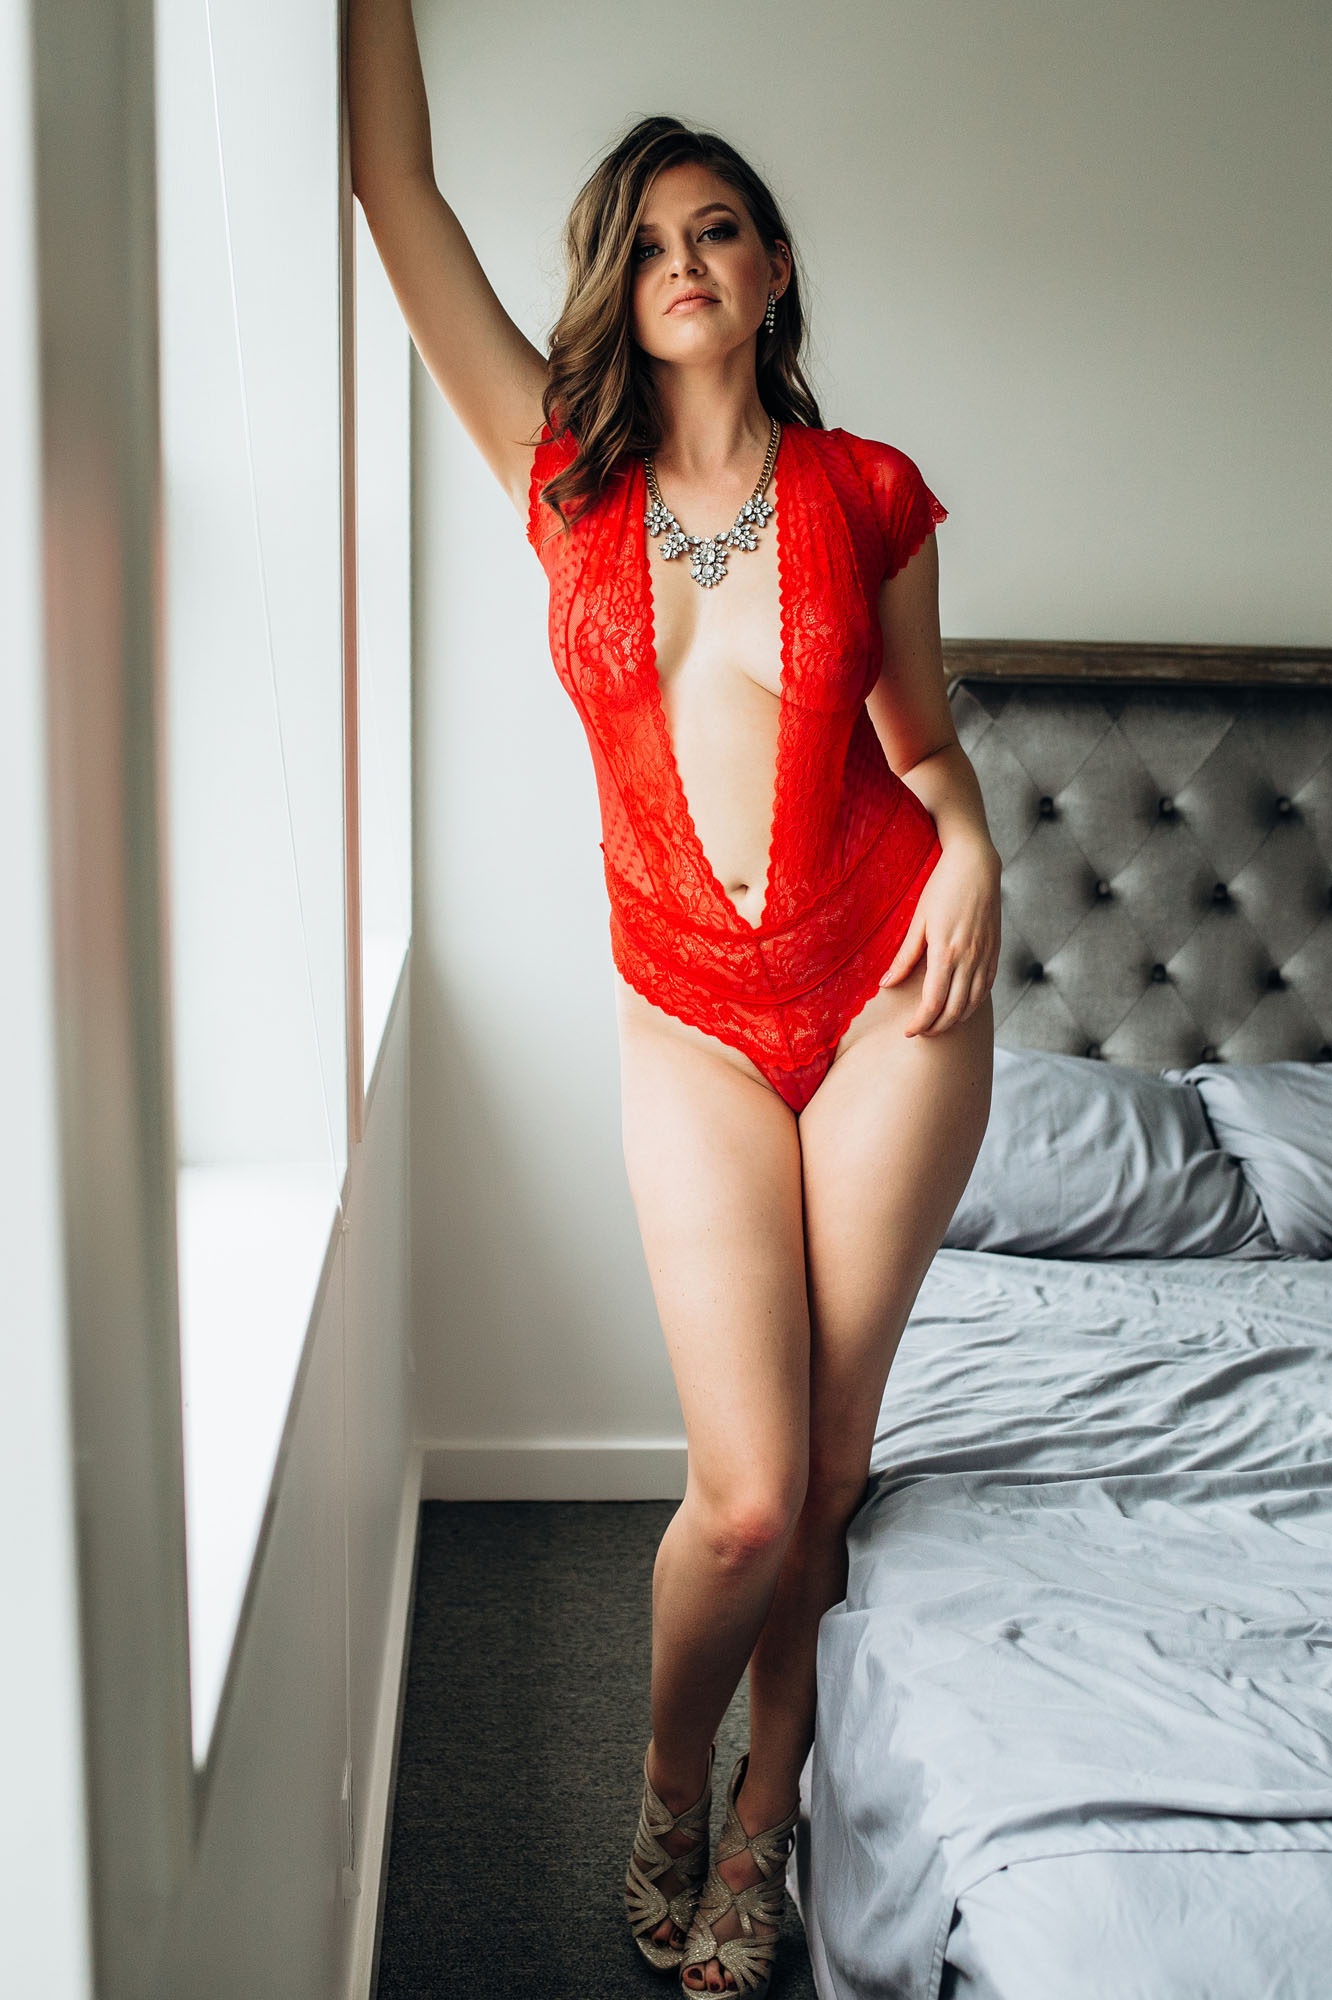 sexy_boudoir_photoshoot_red_lingerie_statment_jewelry.jpg